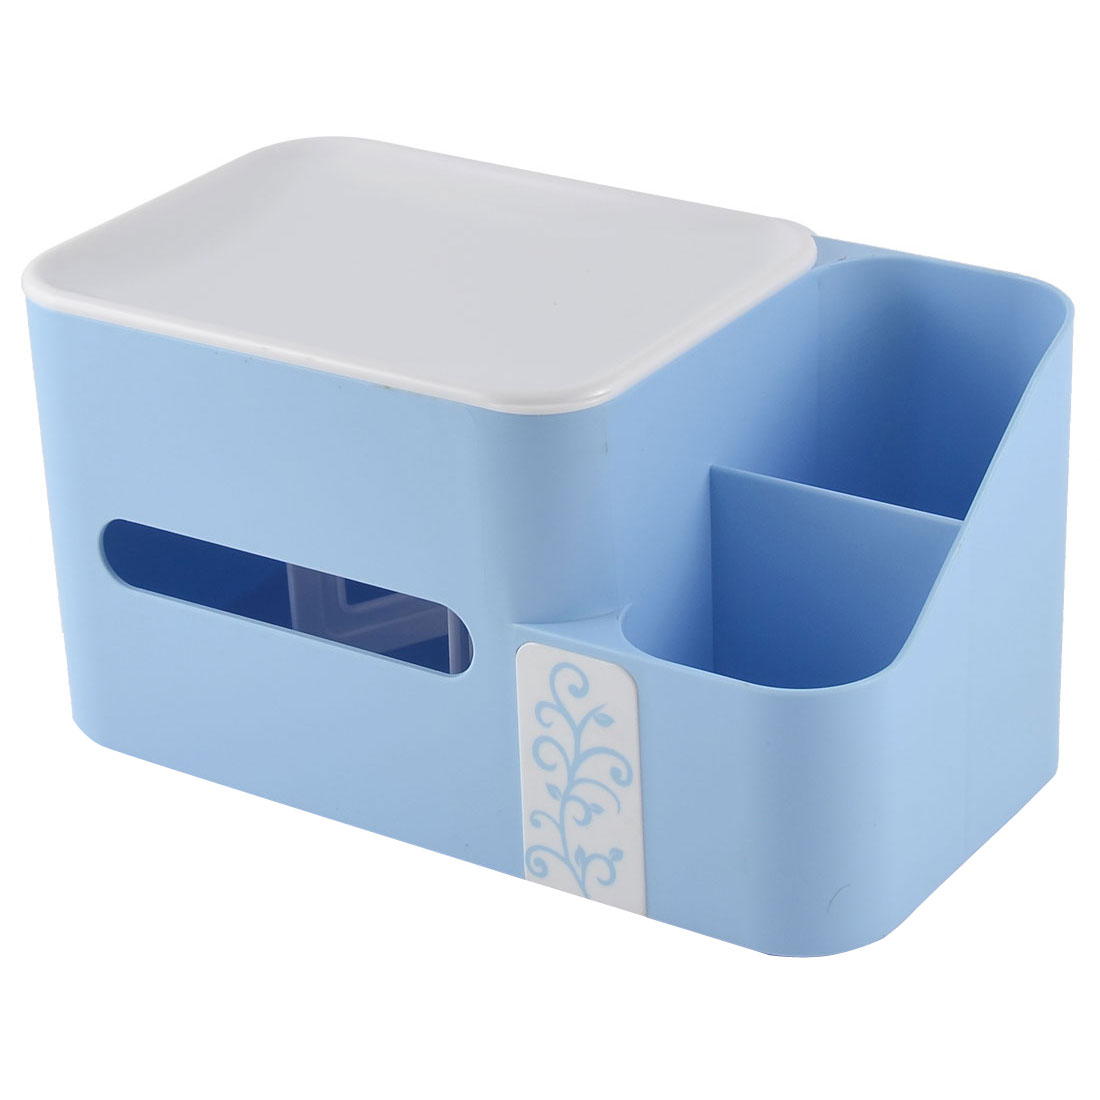 Home Office Desk Plastic Special Spring Design Pen Tissue Holder Blue w Storage Box Case